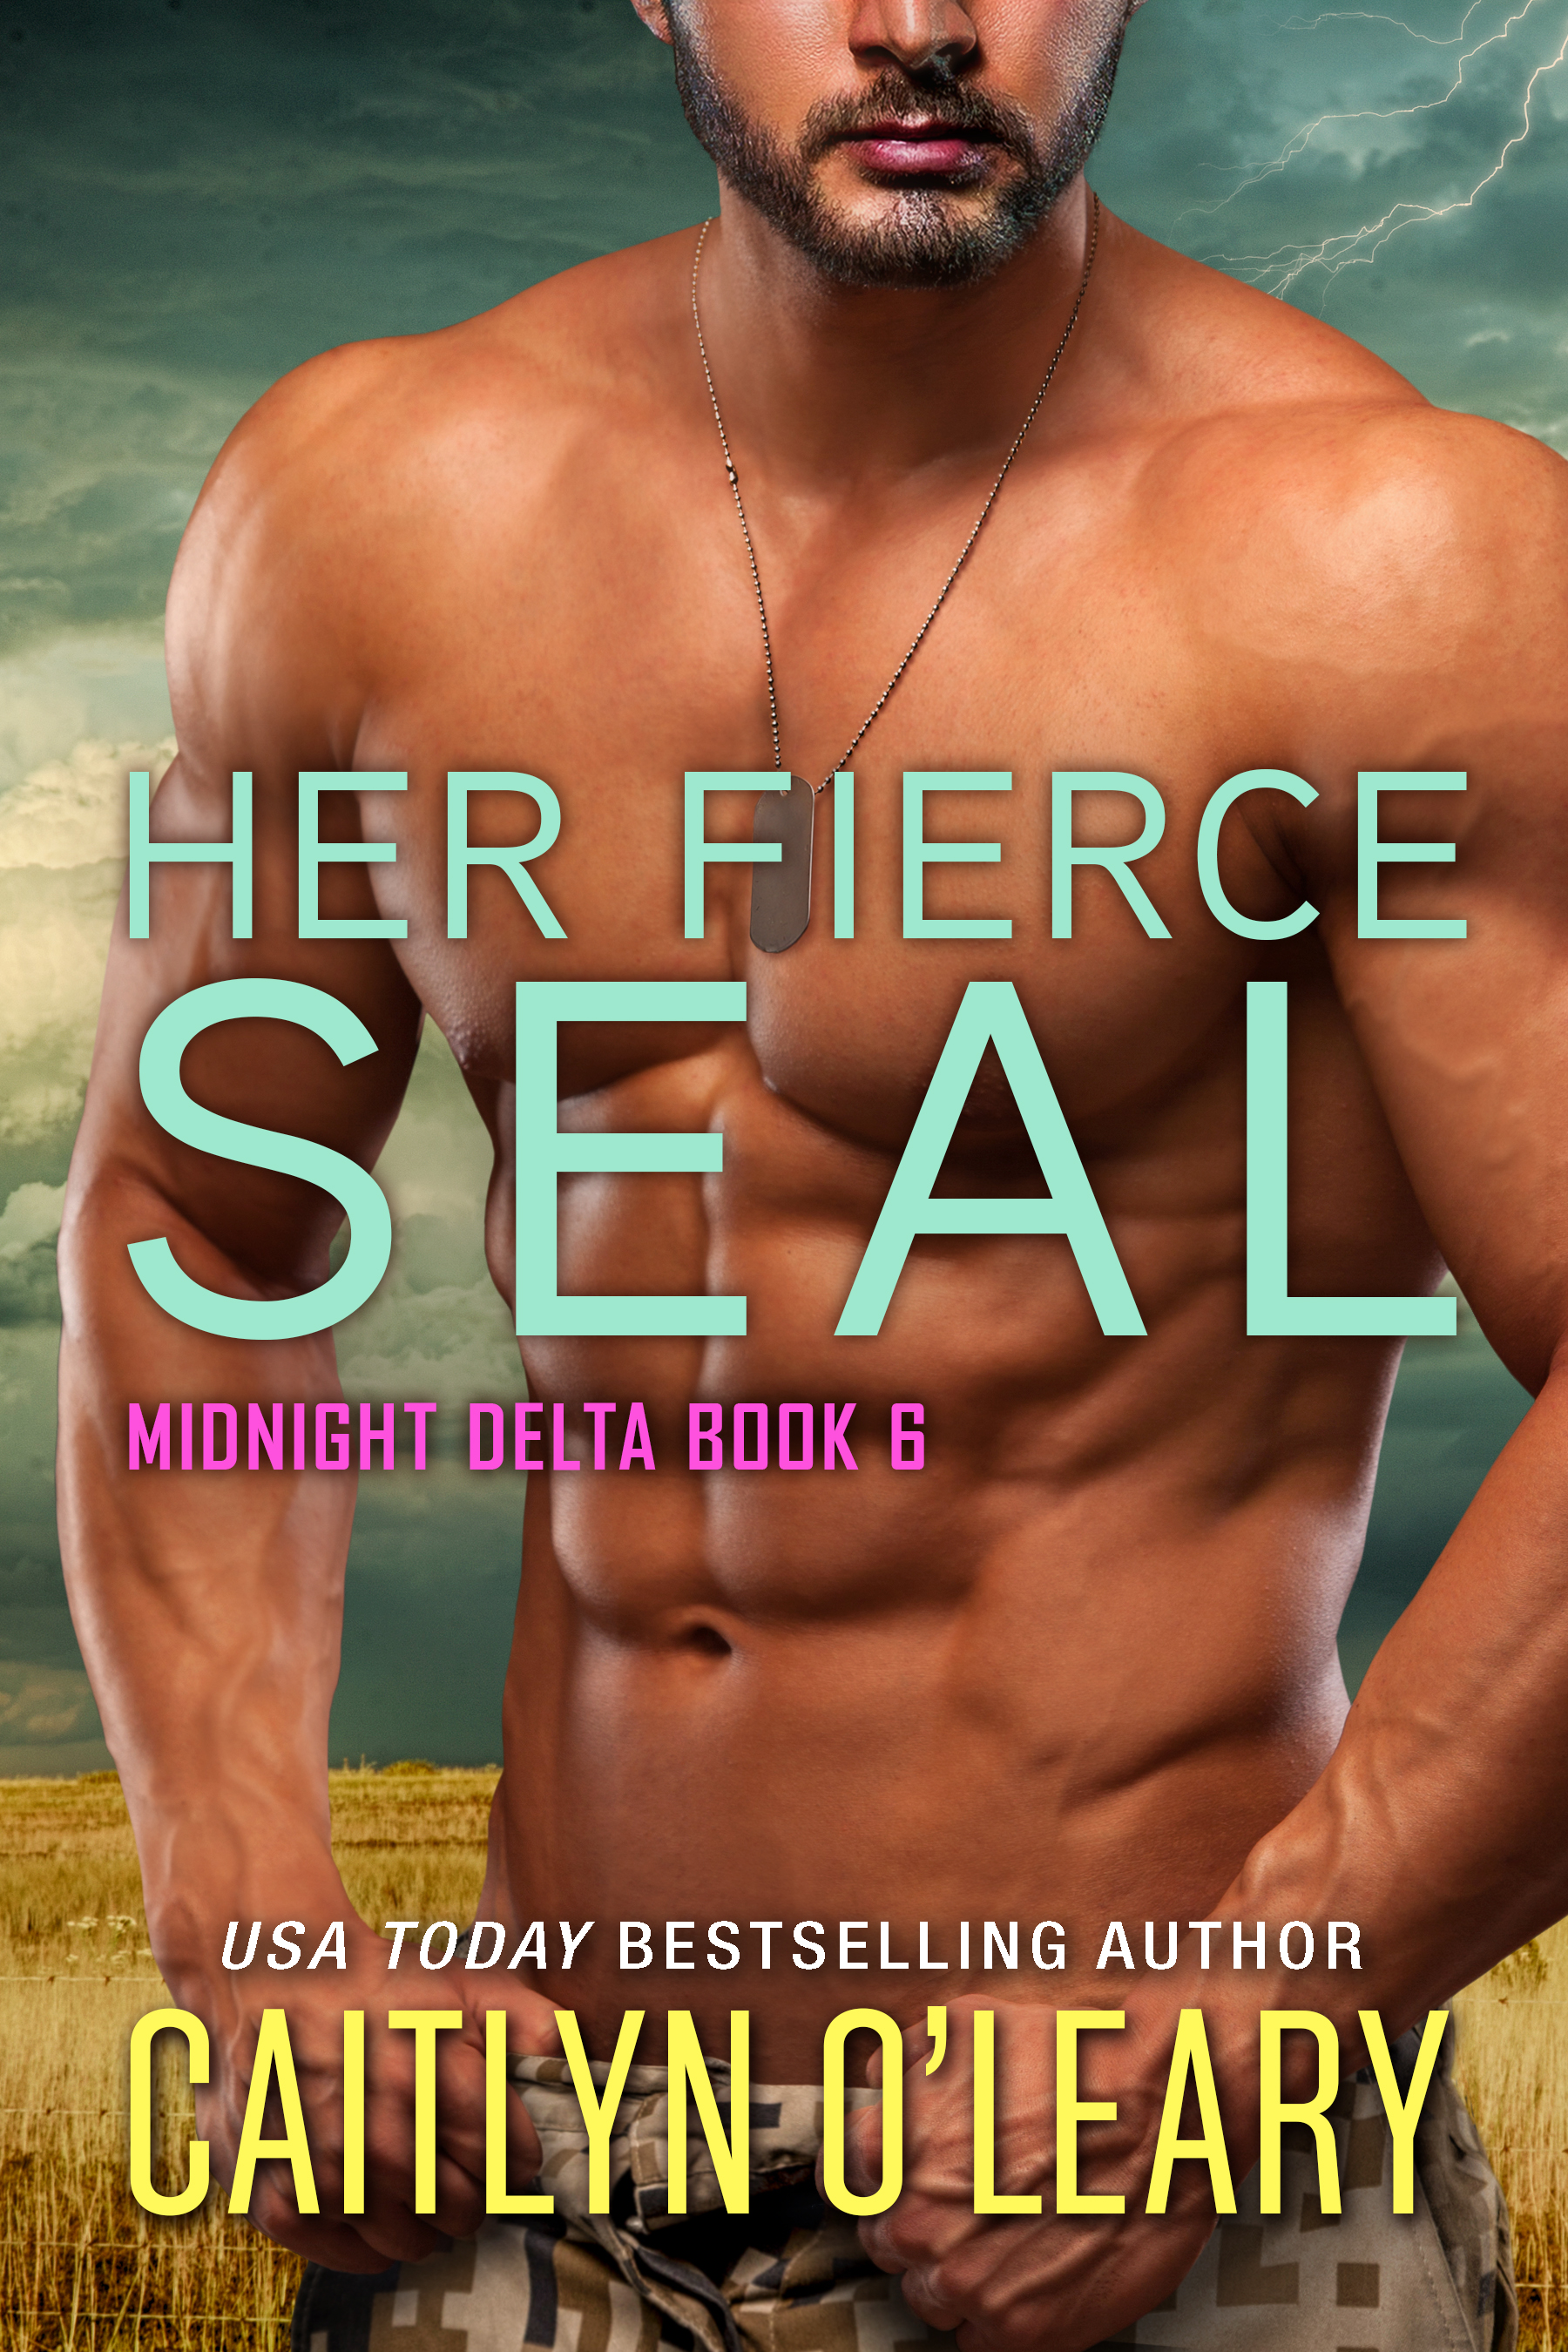 Her Fierce SEAL (Signed)